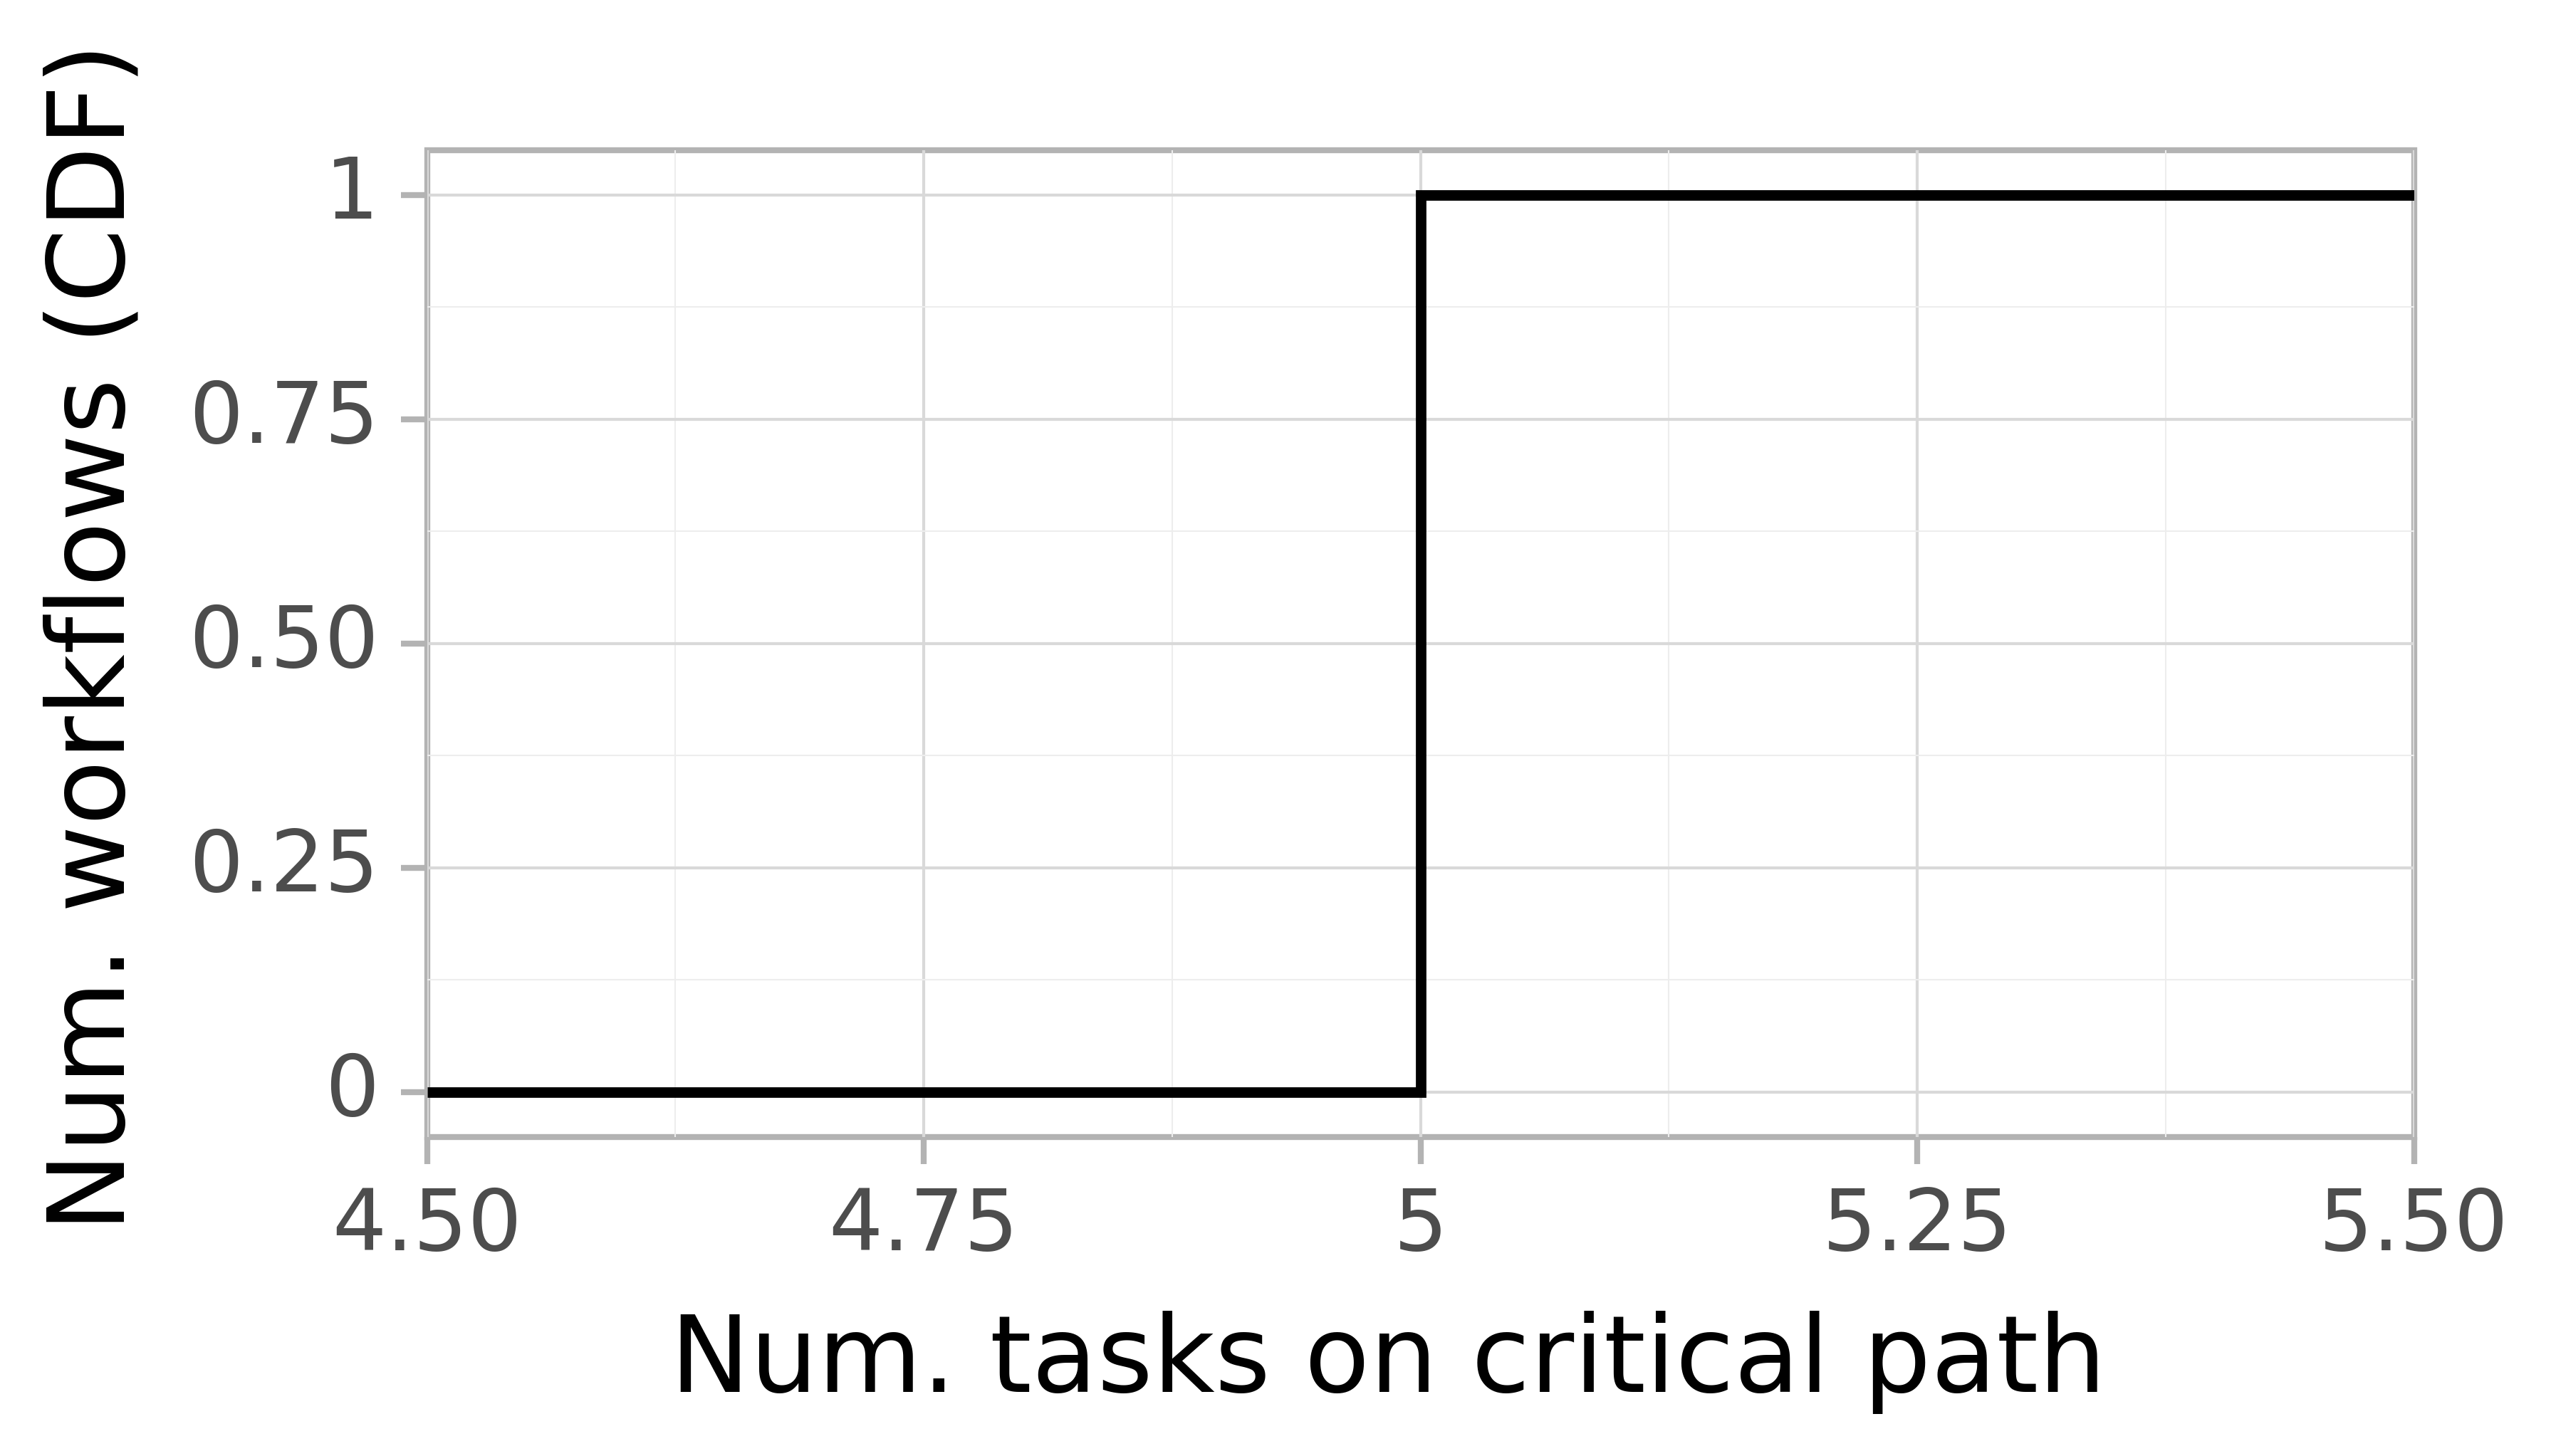 Job critical path task count graph for the askalon-new_ee45 trace.